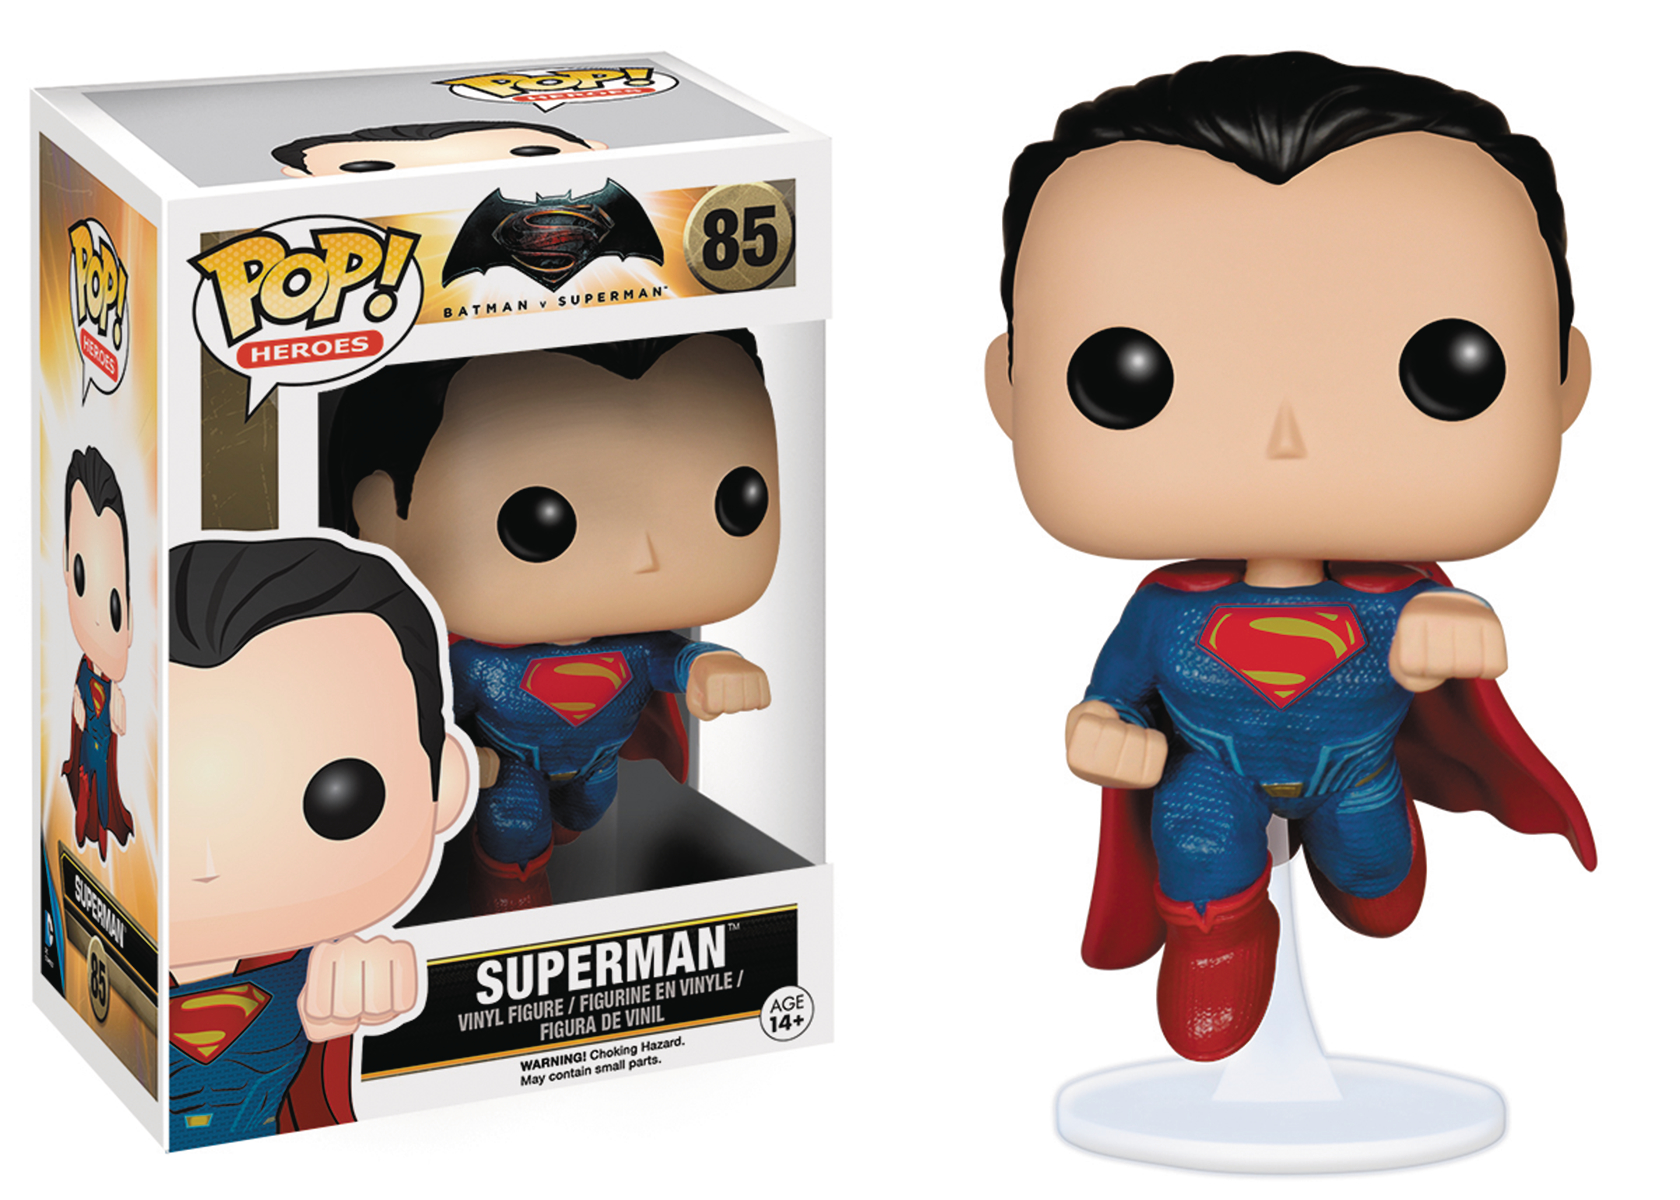 POP BVS SUPERMAN VINYL FIG